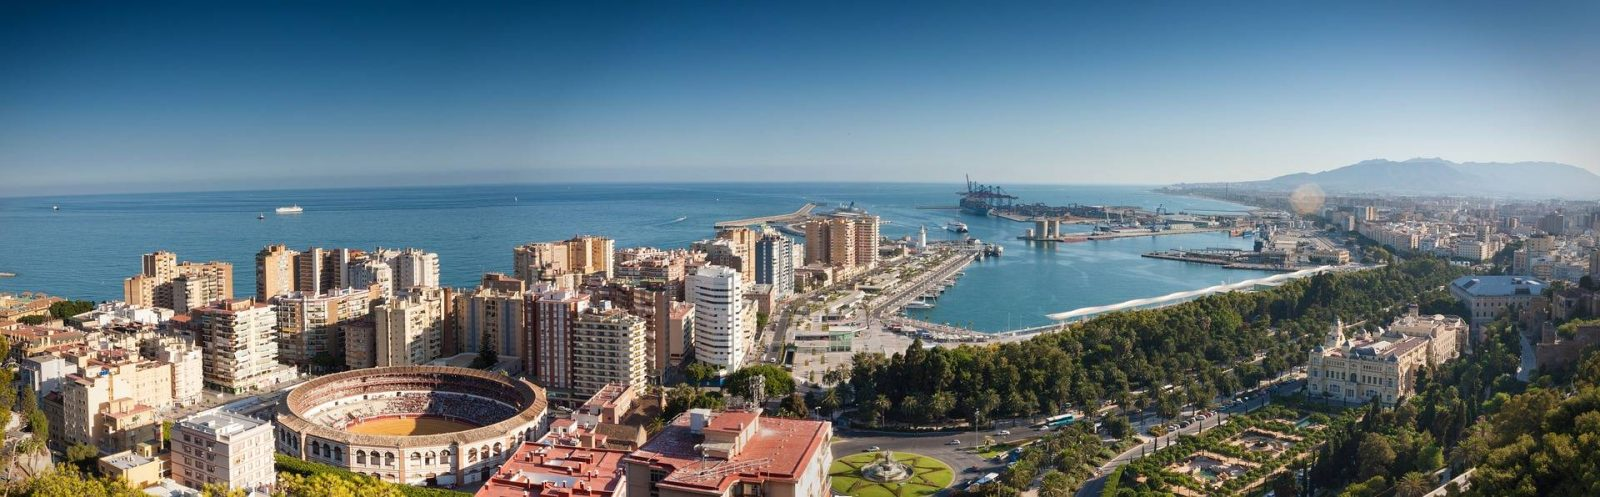 Family Holidays In Malaga: Why It Should Be On Your Destination List